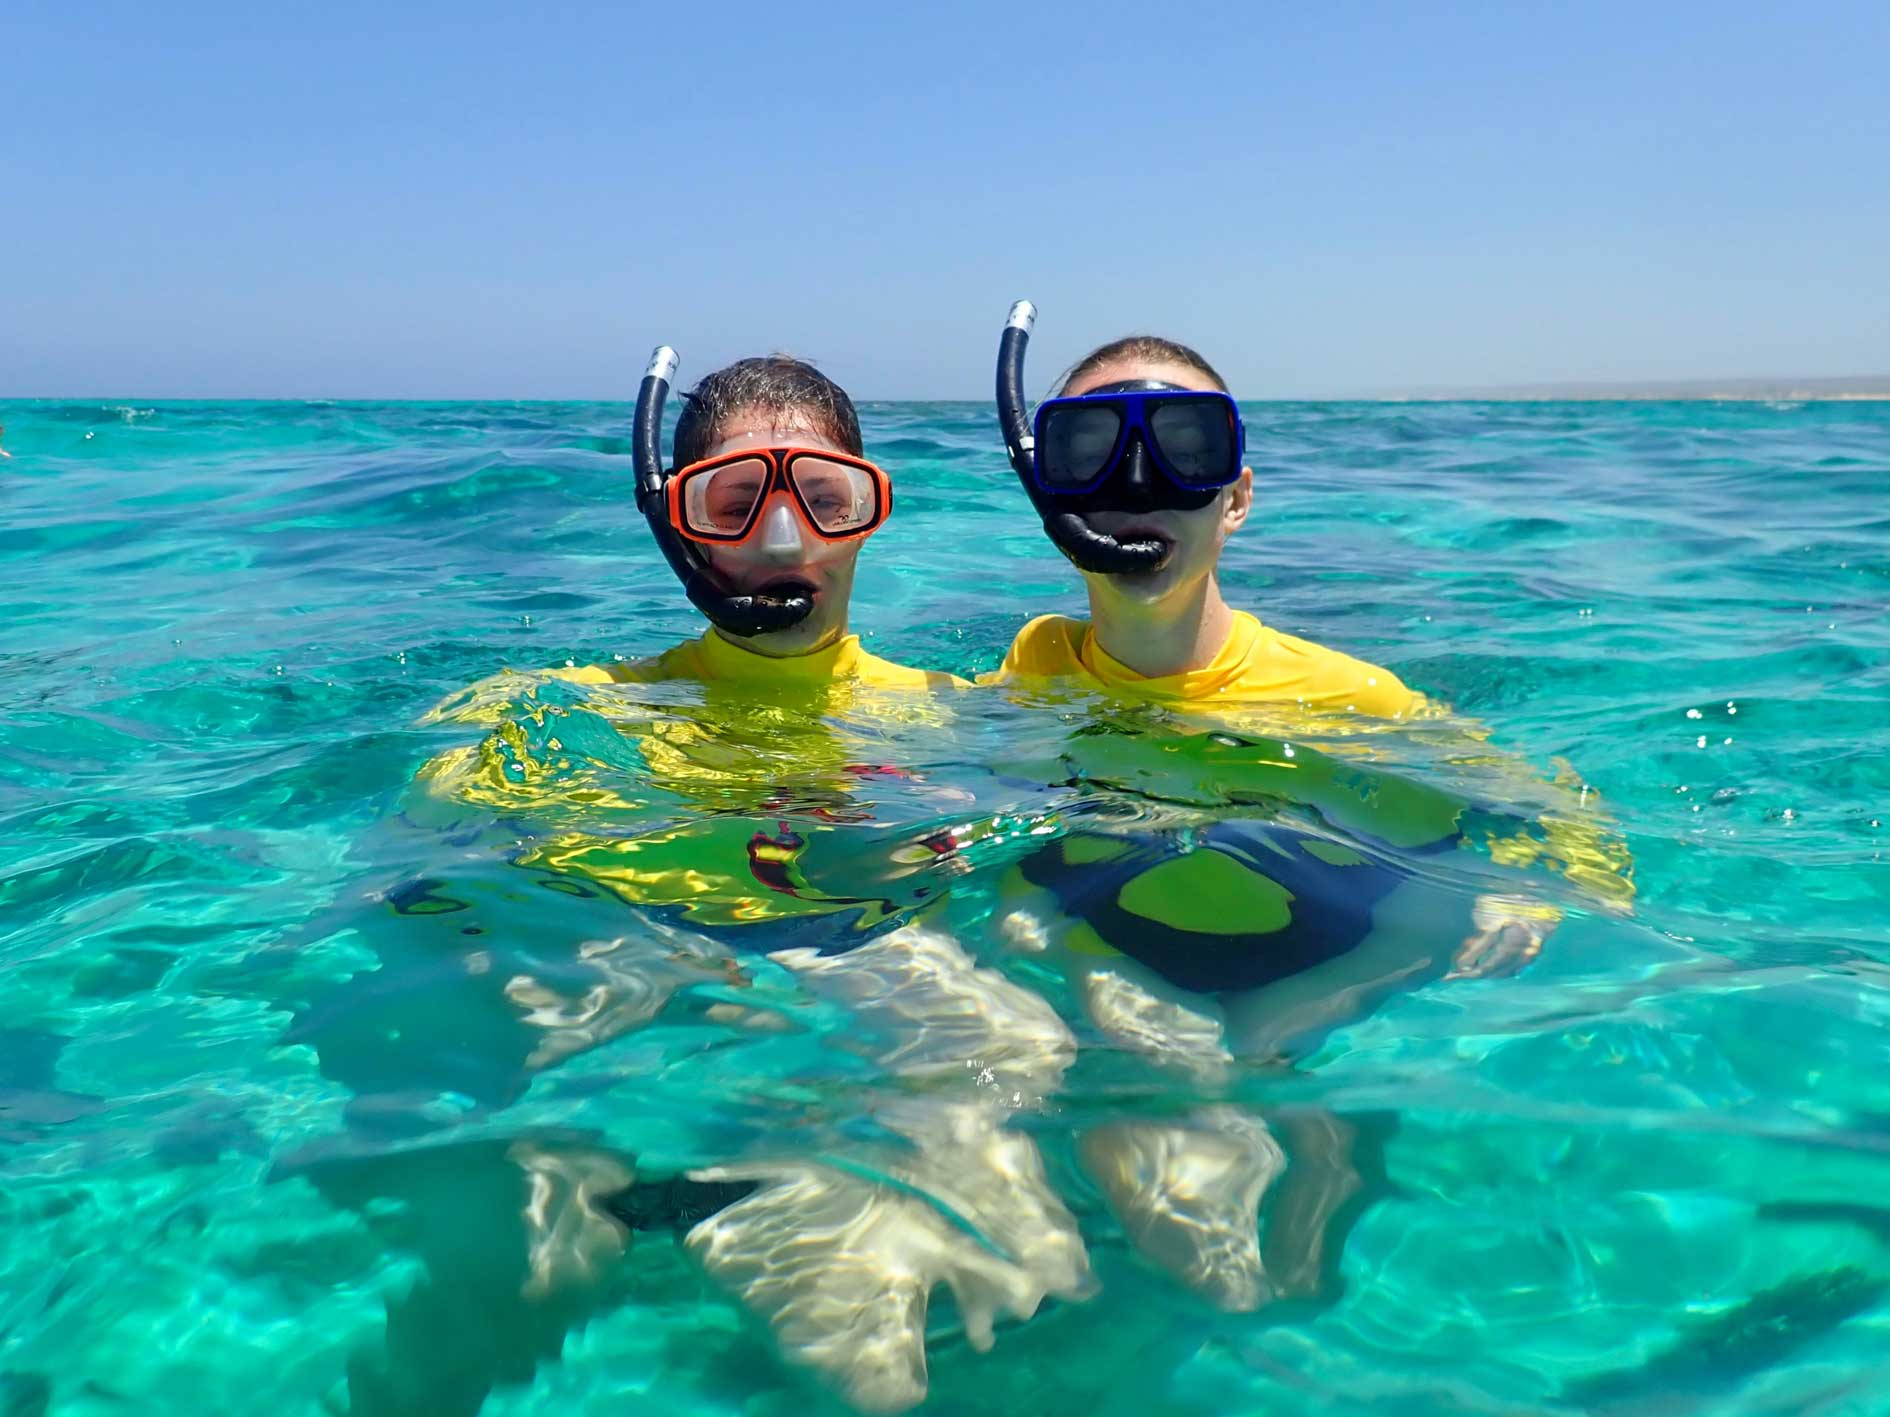 Ladies on Ningaloo Reef snorkel tour purchased by gift vouchers, smiling in clear turquoise water